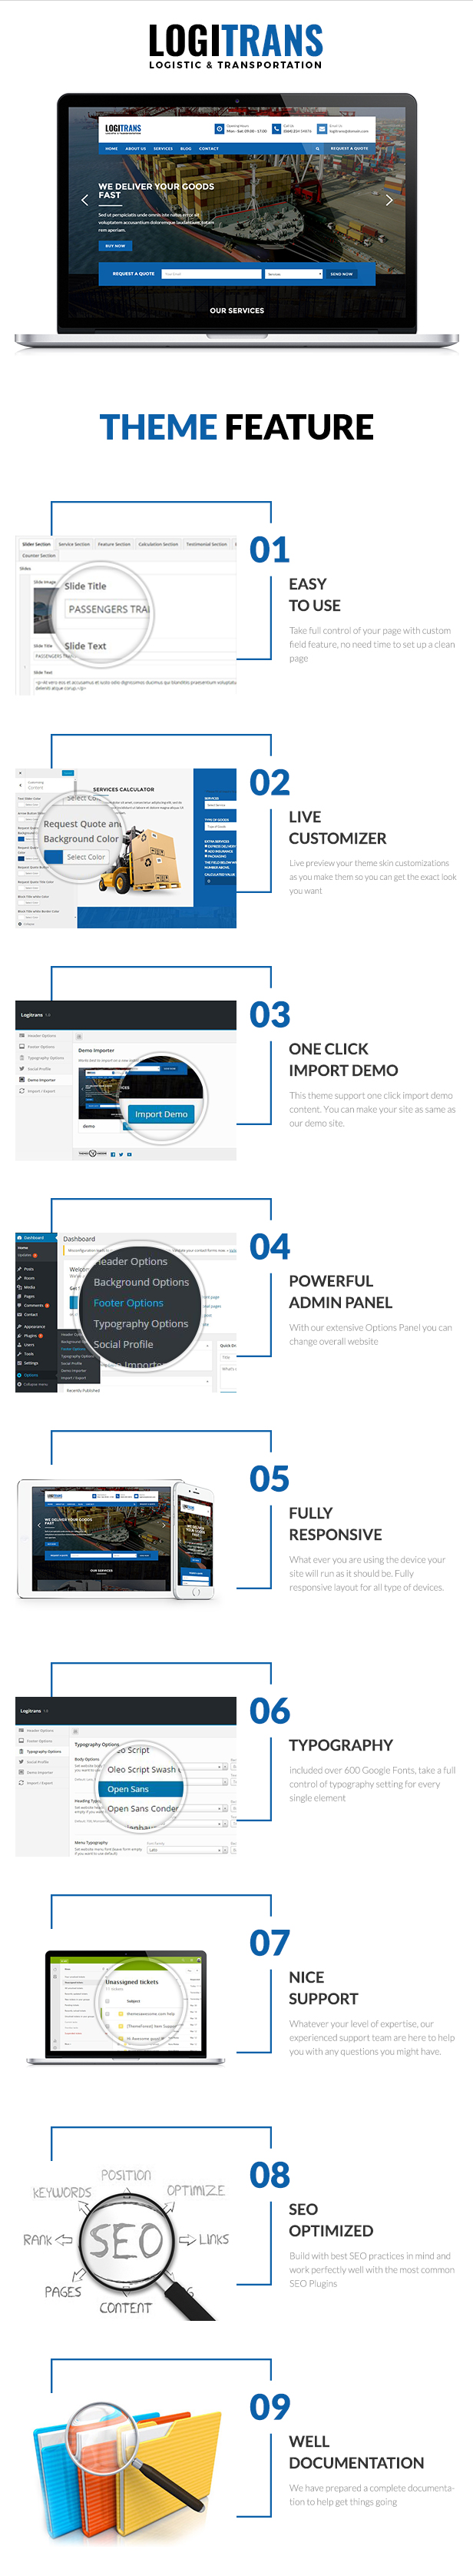 Logistic WordPress Theme - LogiTrans